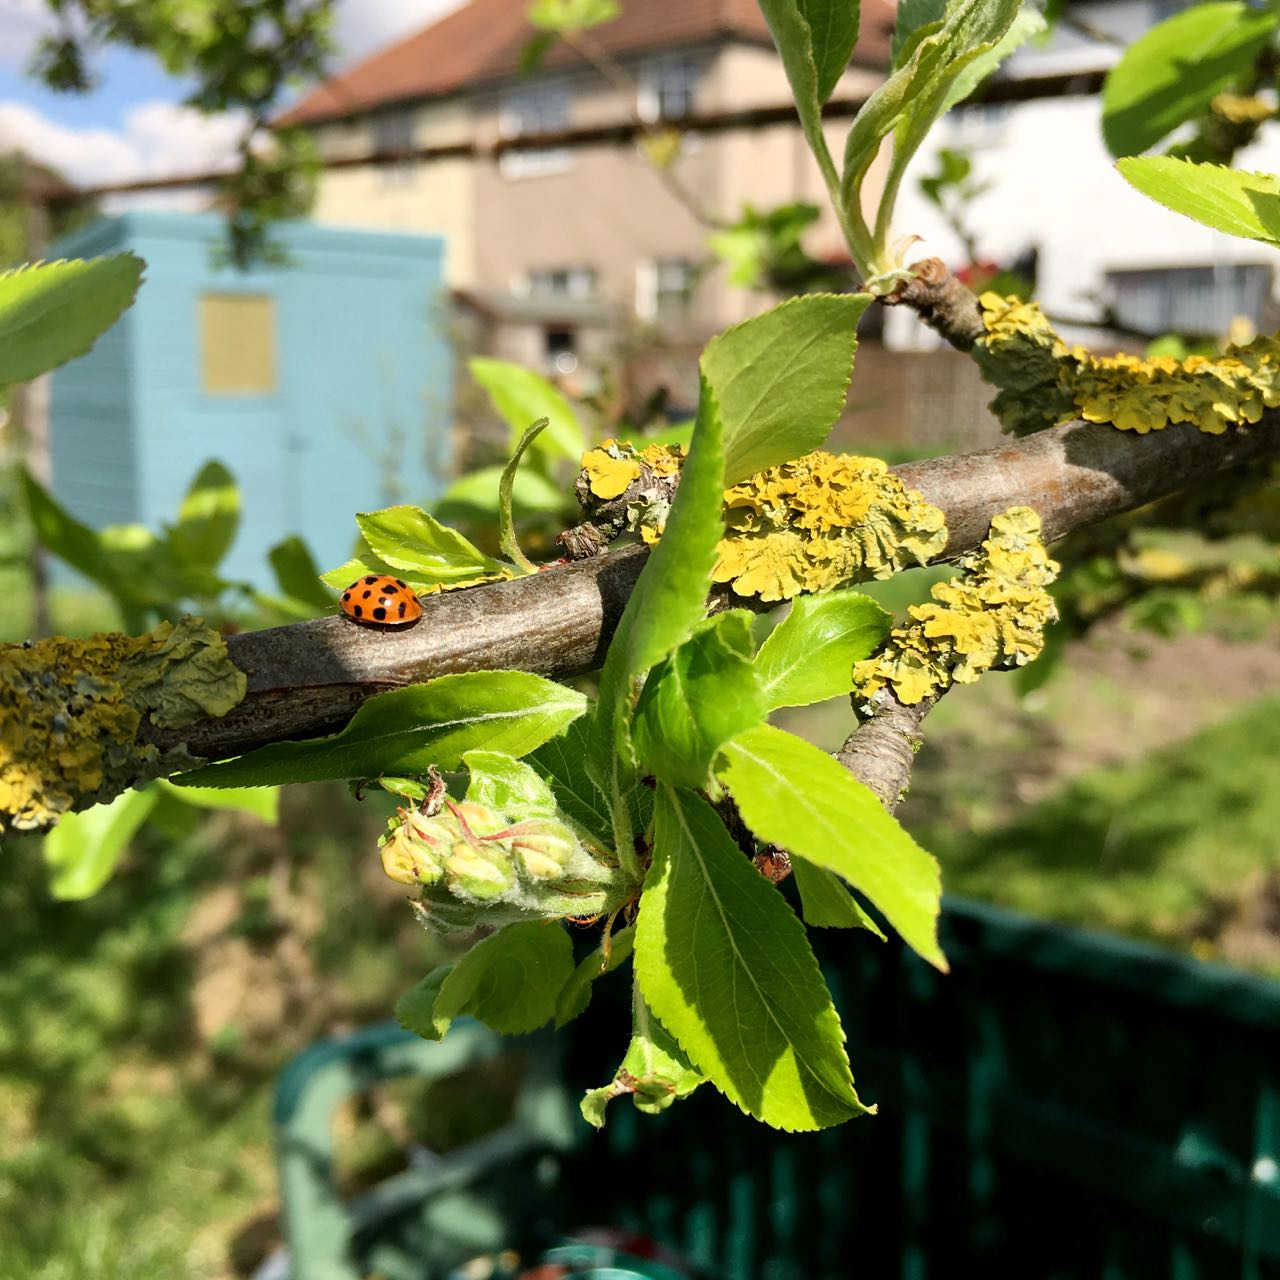 do you liken my lichen, the ladybird seems pretty keen on the crab apple tree